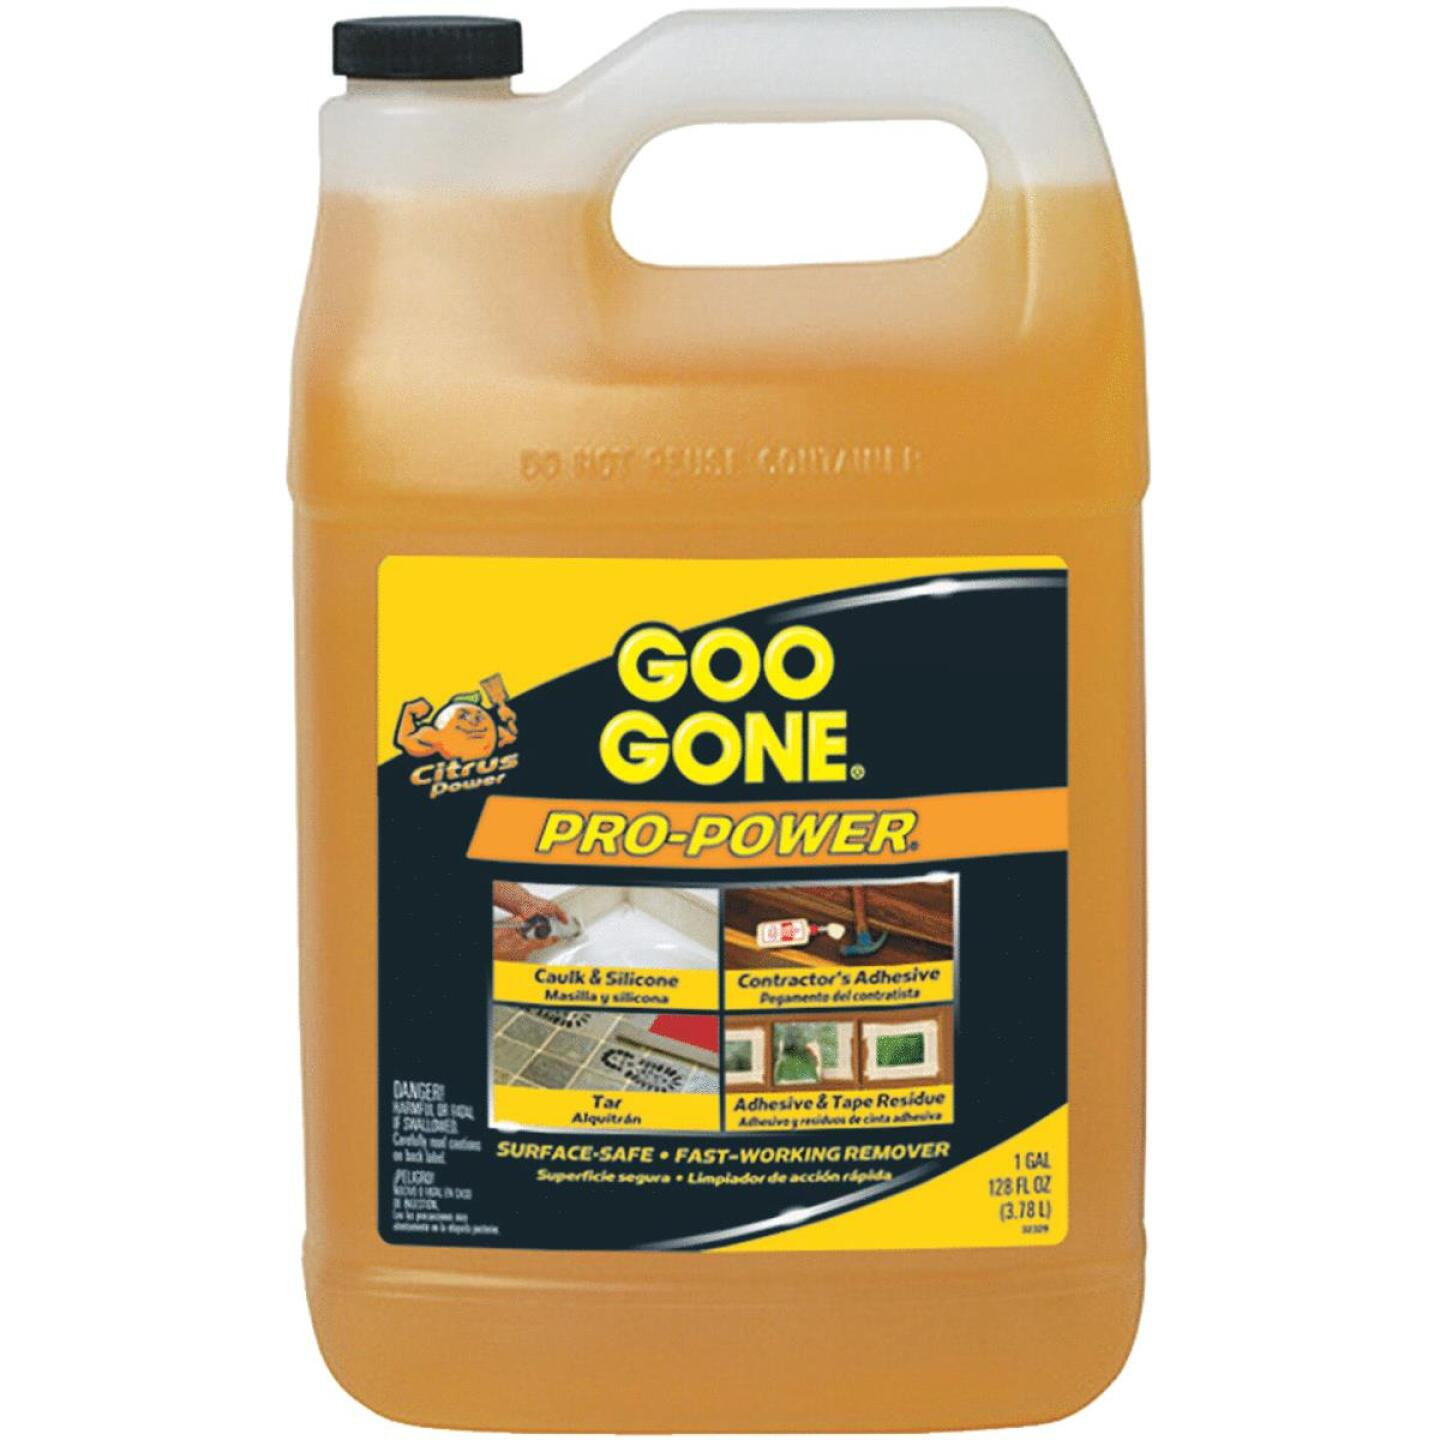 Goo Gone 1 Gal. Pro-Power Adhesive Remover Image 236